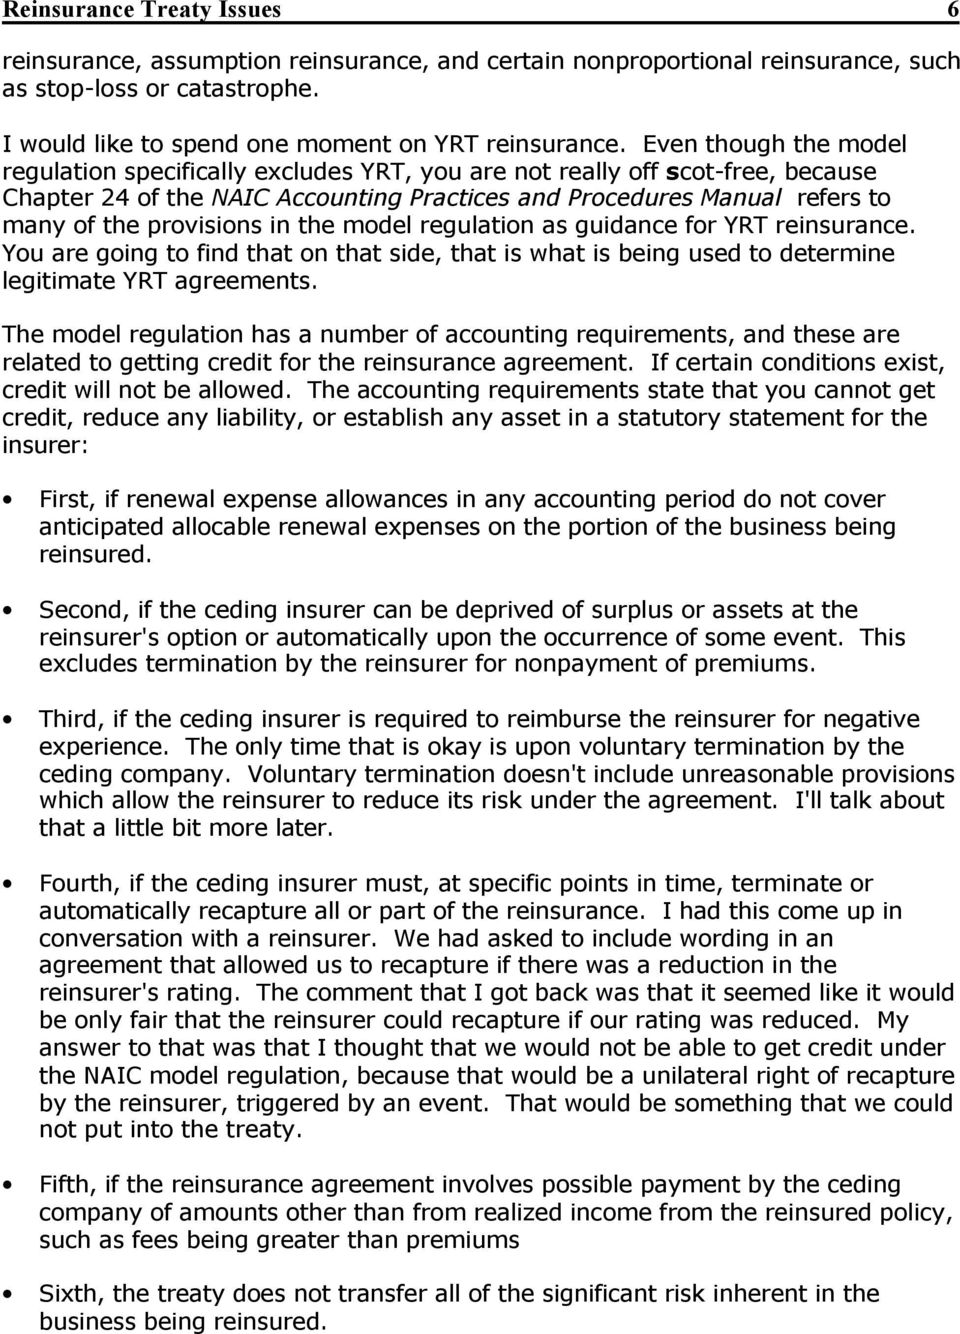 provisions in the model regulation as guidance for YRT reinsurance. You are going to find that on that side, that is what is being used to determine legitimate YRT agreements.